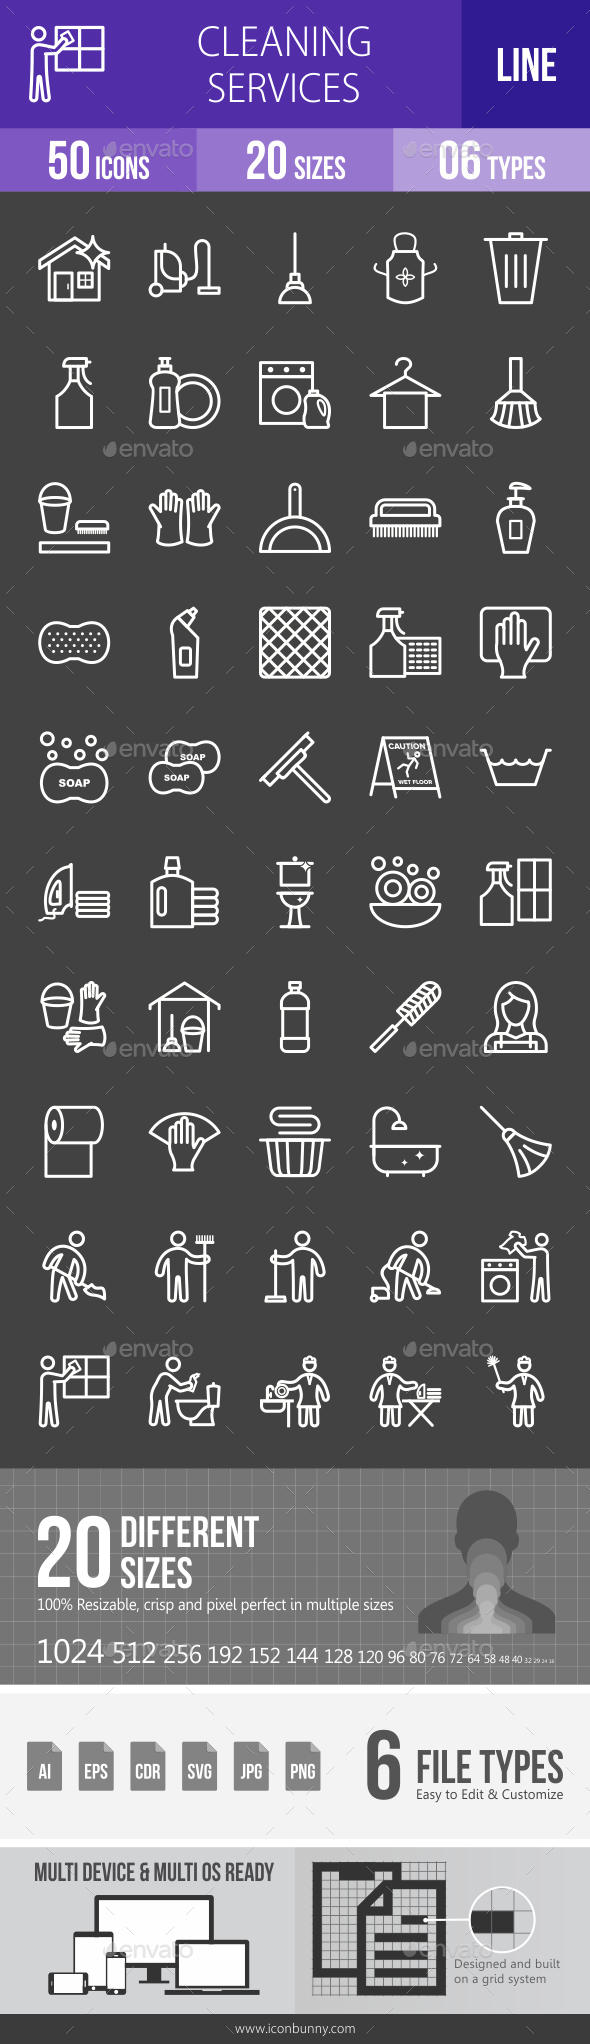 Cleaning Services Line Inverted Icons - Icons